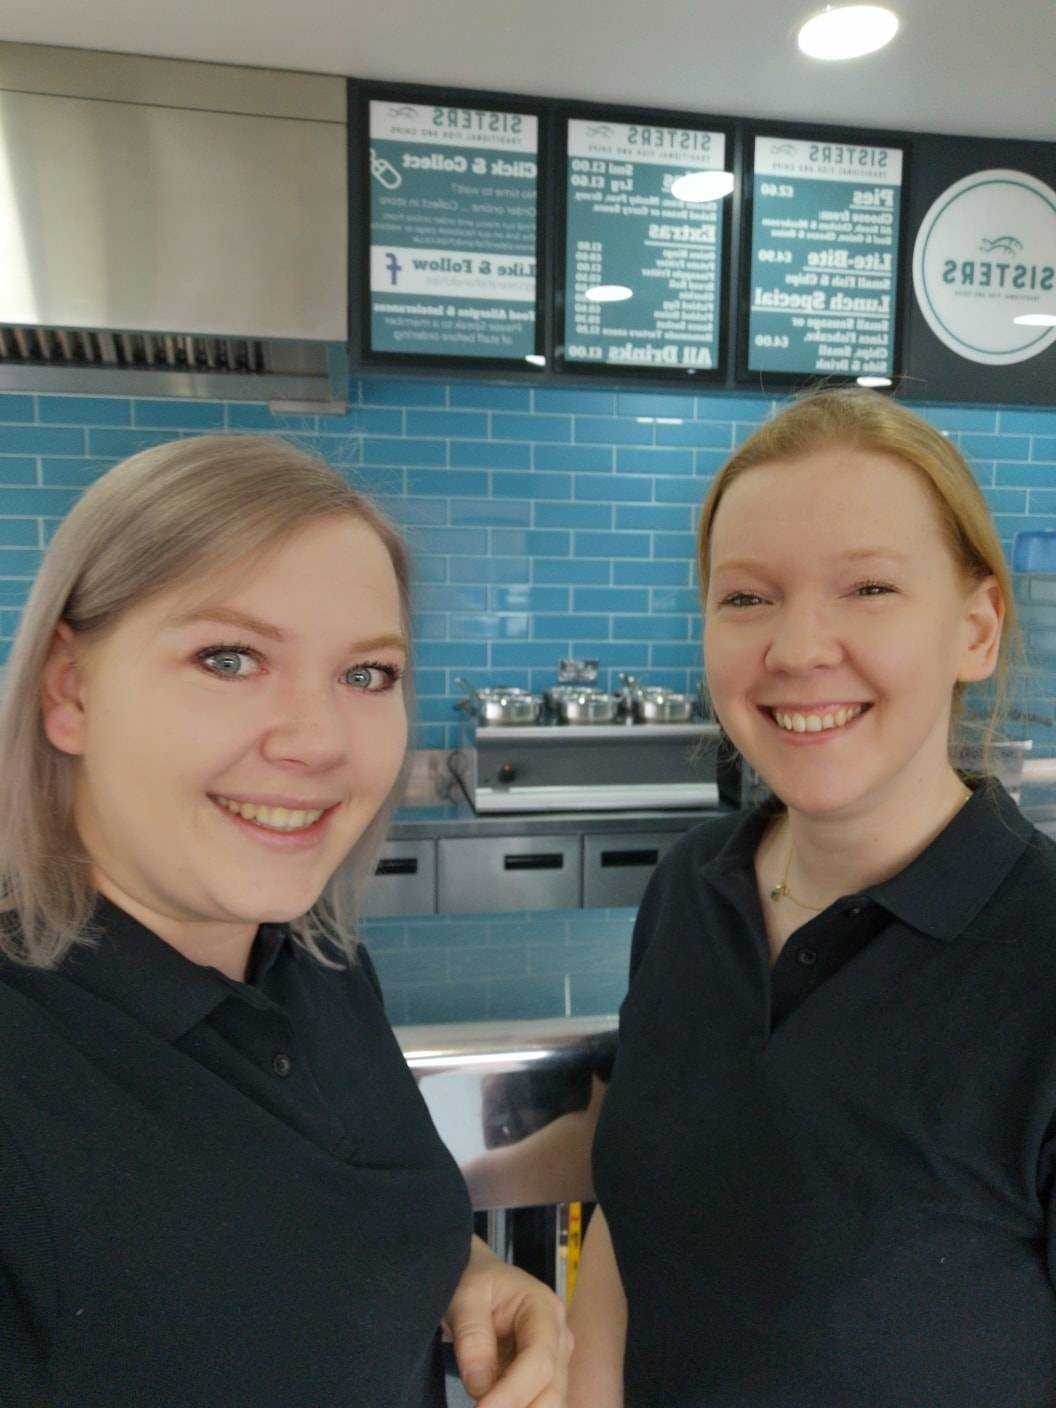 Rachel Tweedale, Lauren Walker, Sisters, Sisters Fish and Chips, north hykeham